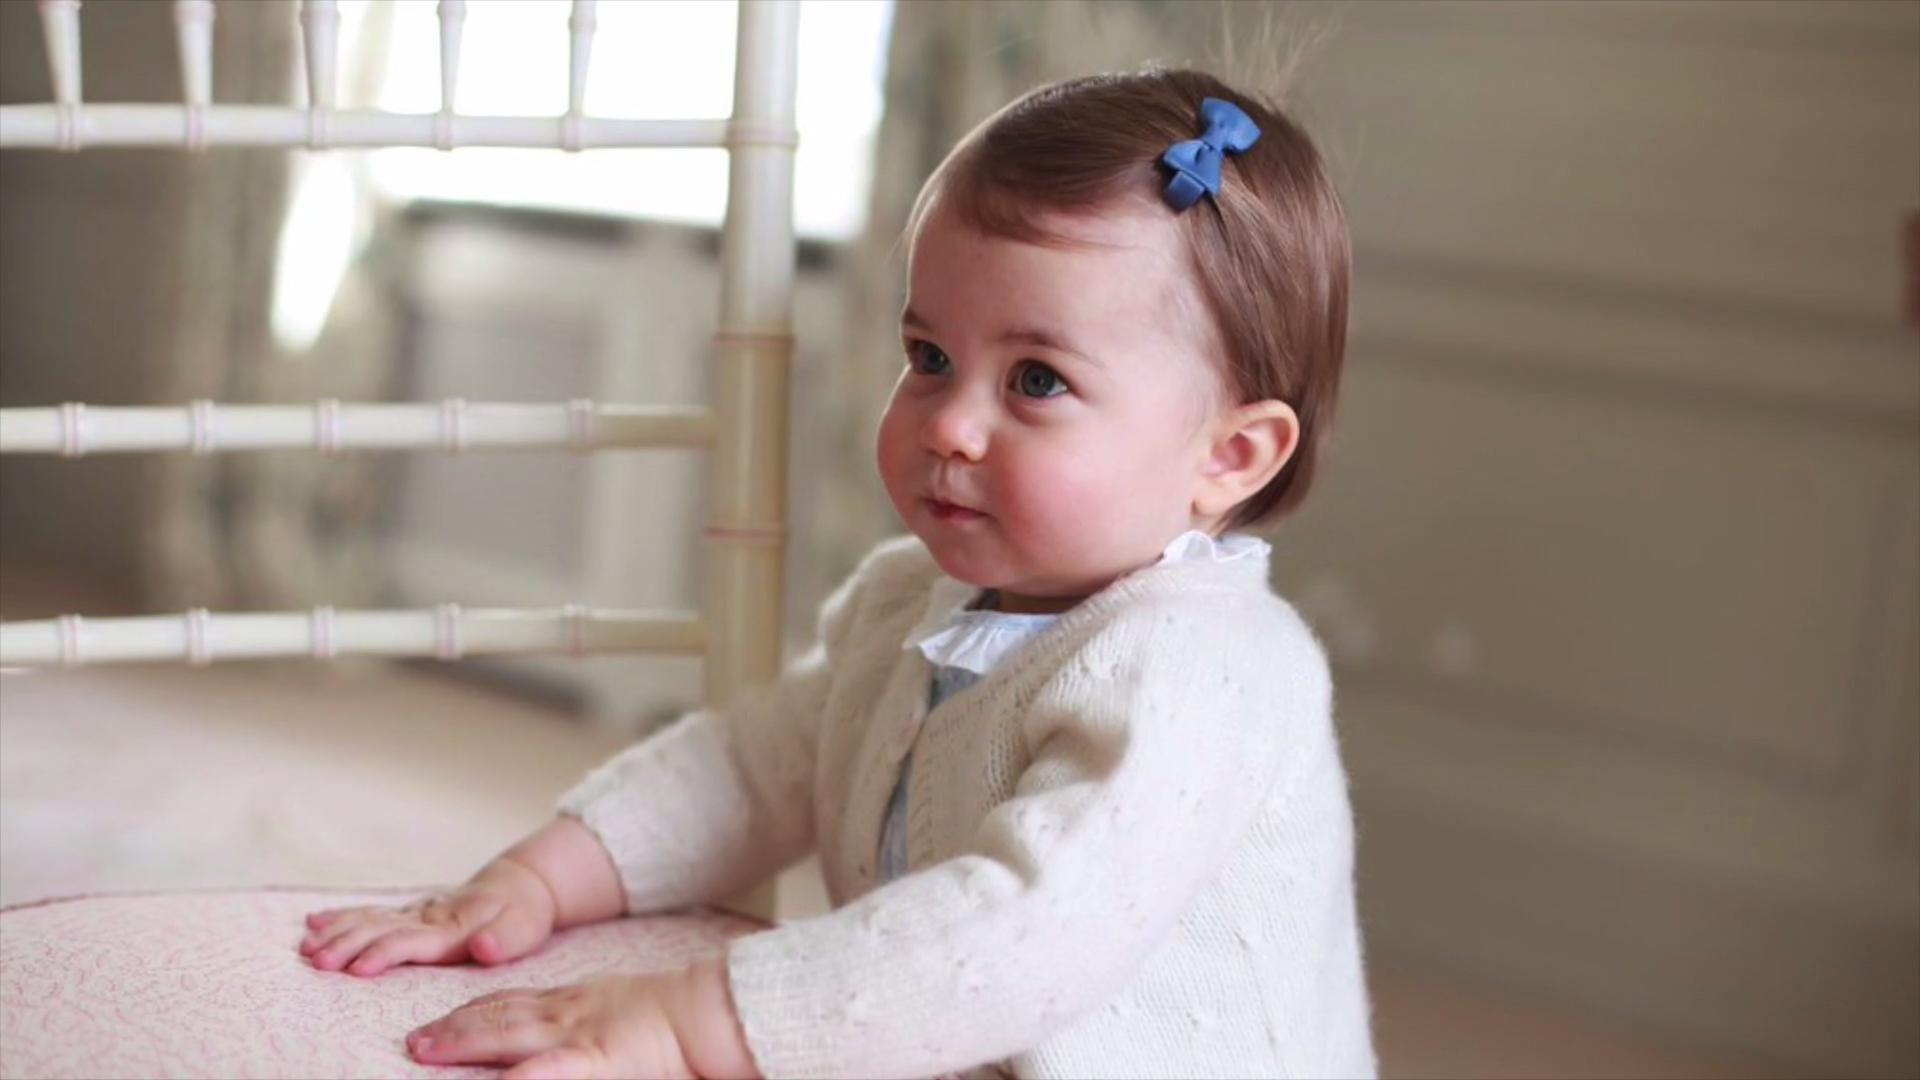 Believe it or not, Princess Charlotte is already one year old. The Royal family celebrated the occasion by releasing several photos of the princess taken in April at their family home in Norfolk.